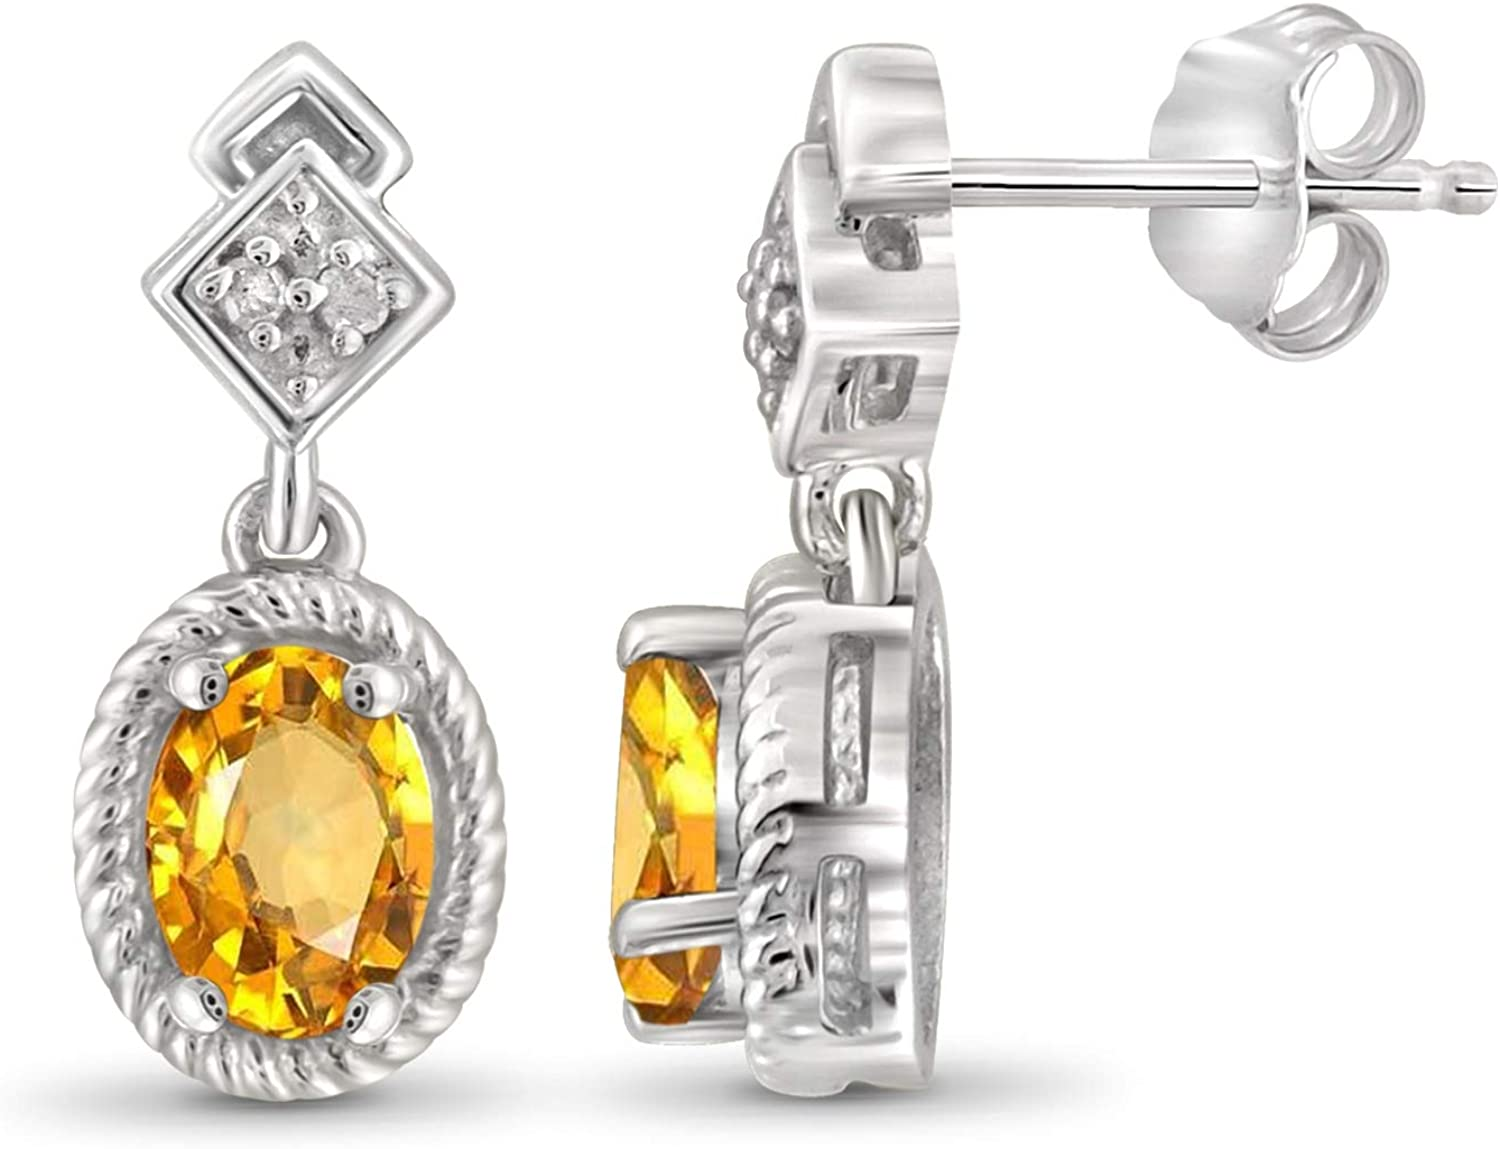 Amazon Com Jewelexcess 0 90 Carat T G W Citrine And Accent White Diamond Sterling Silver Earrings Jewelry